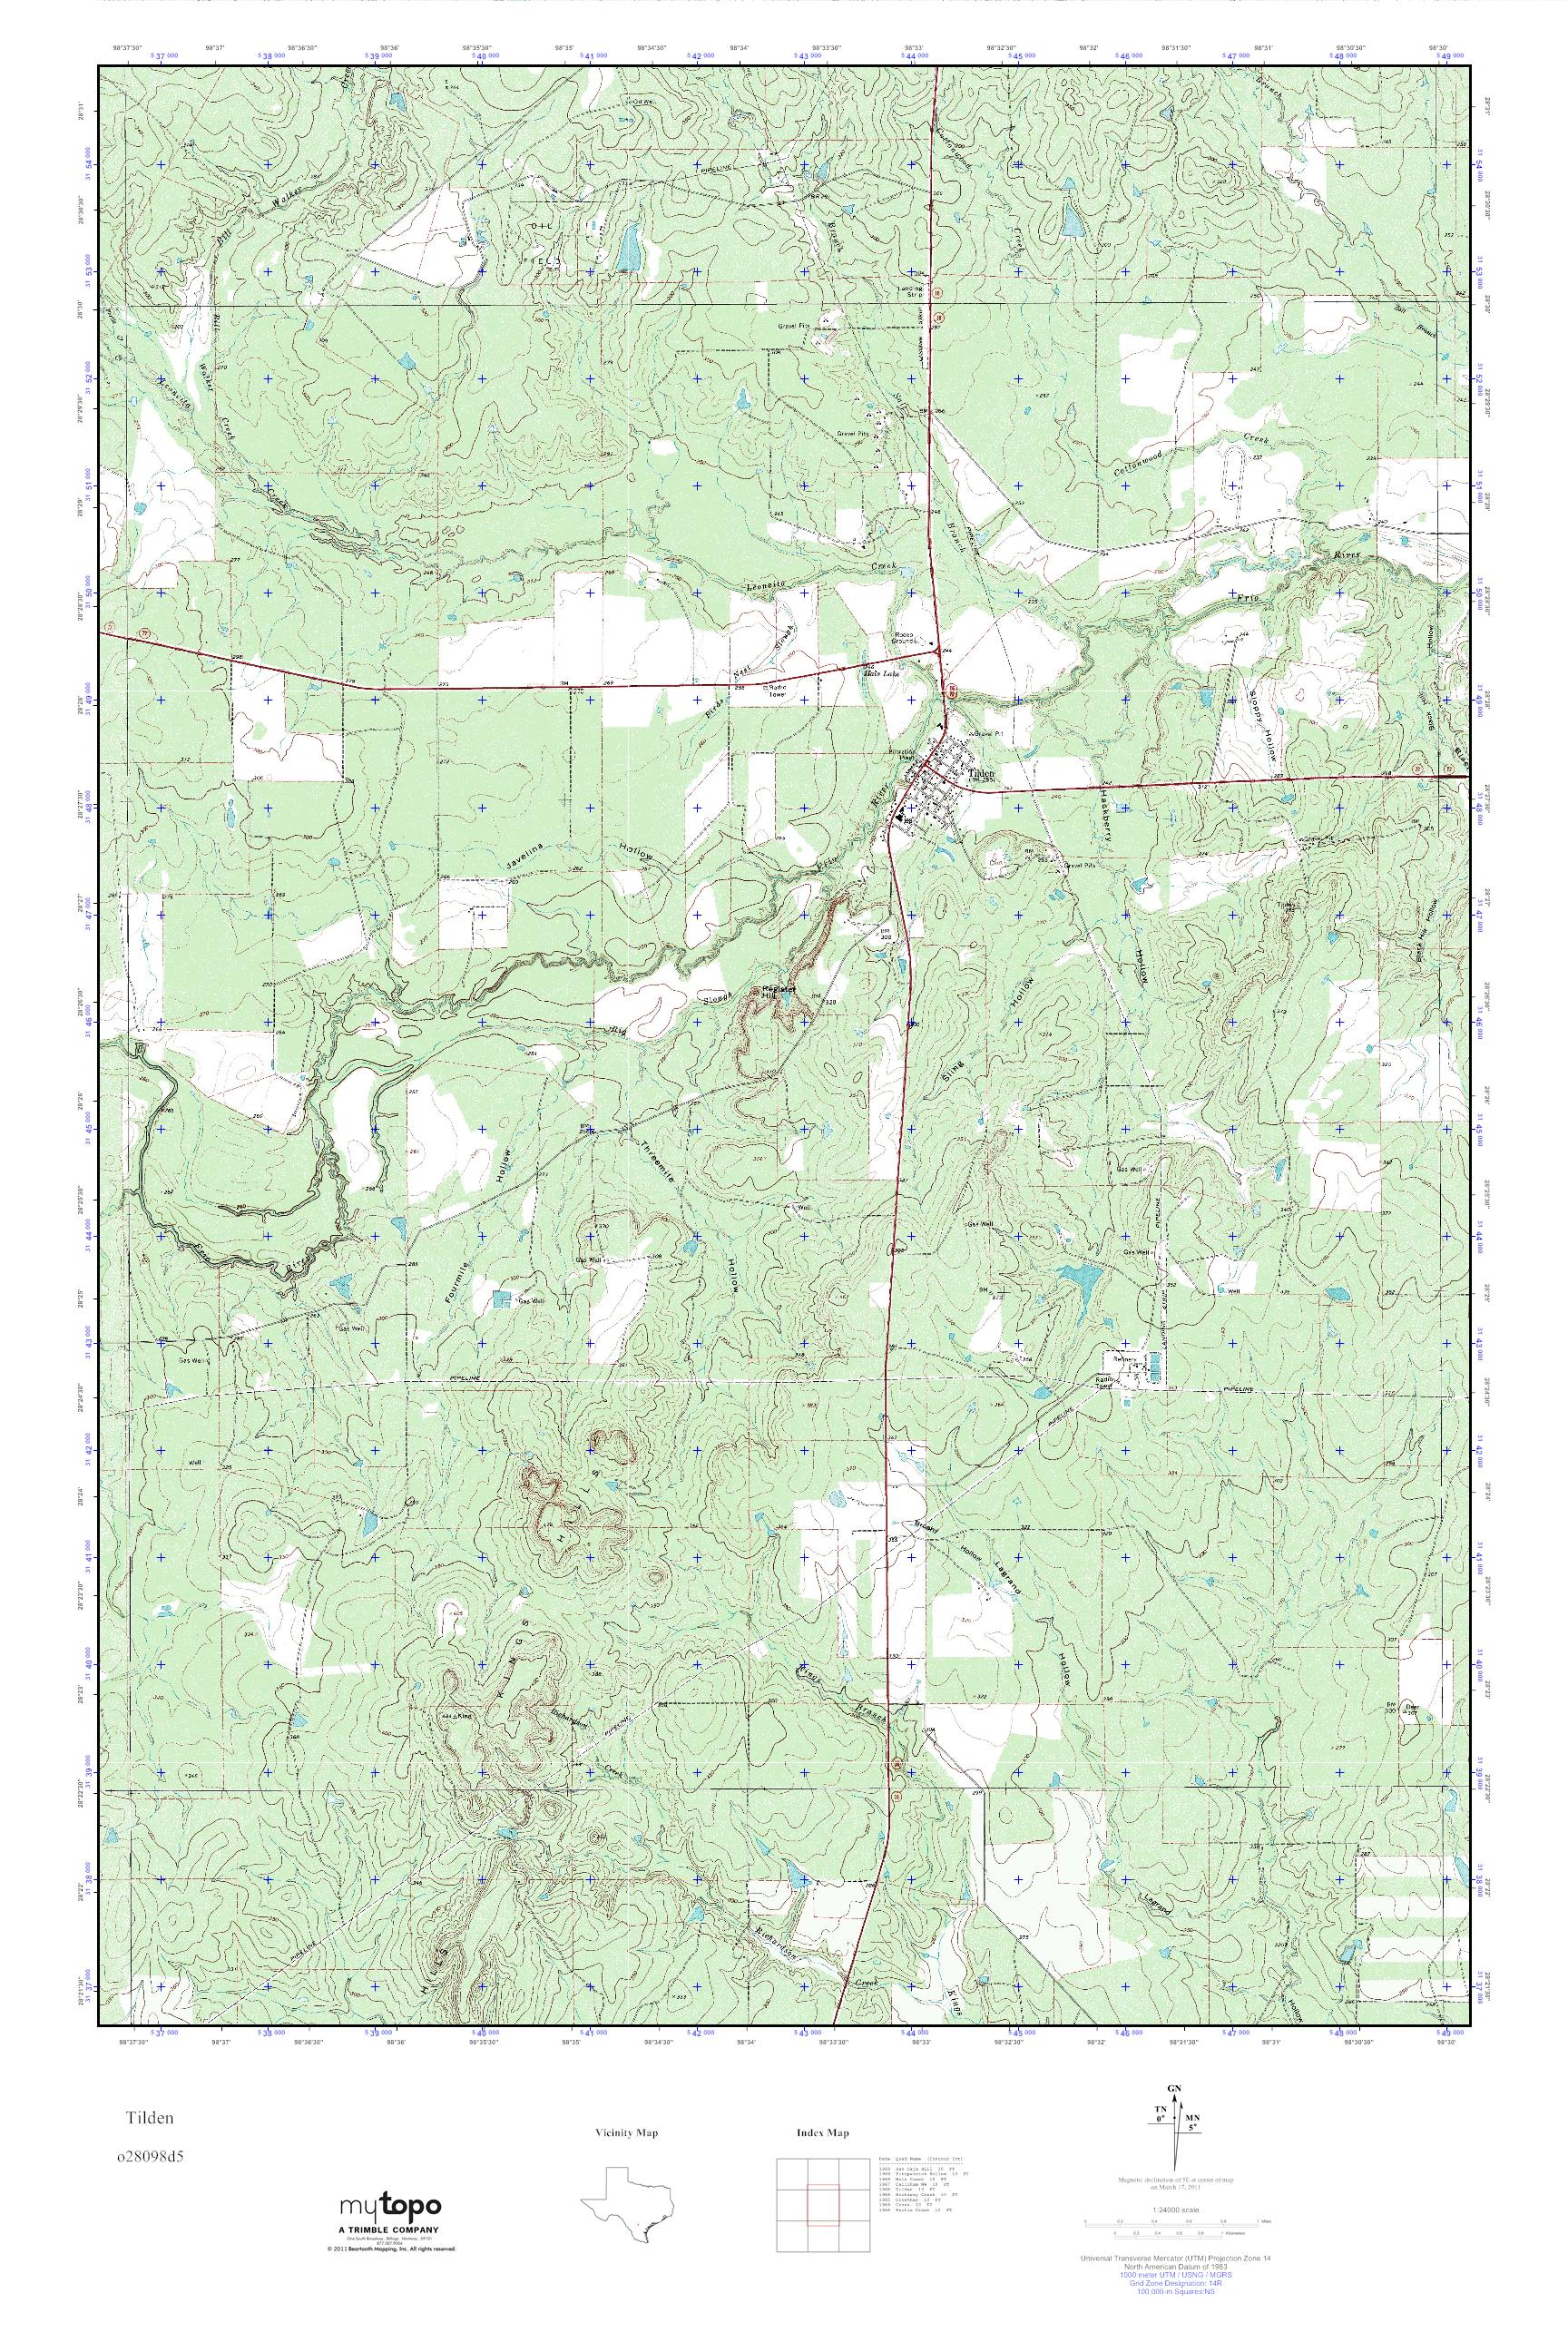 Mytopo tilden texas usgs quad topo map publicscrutiny Choice Image